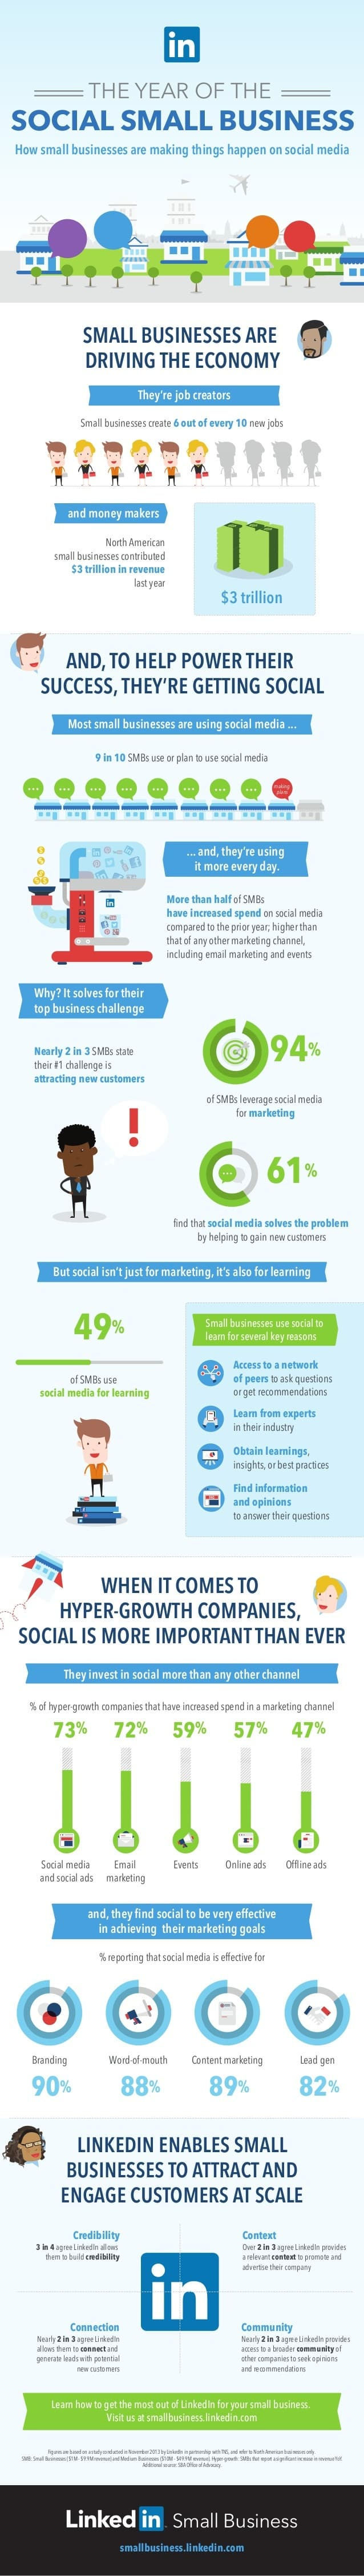 94 percent of small businesses in the US use social media for marketing